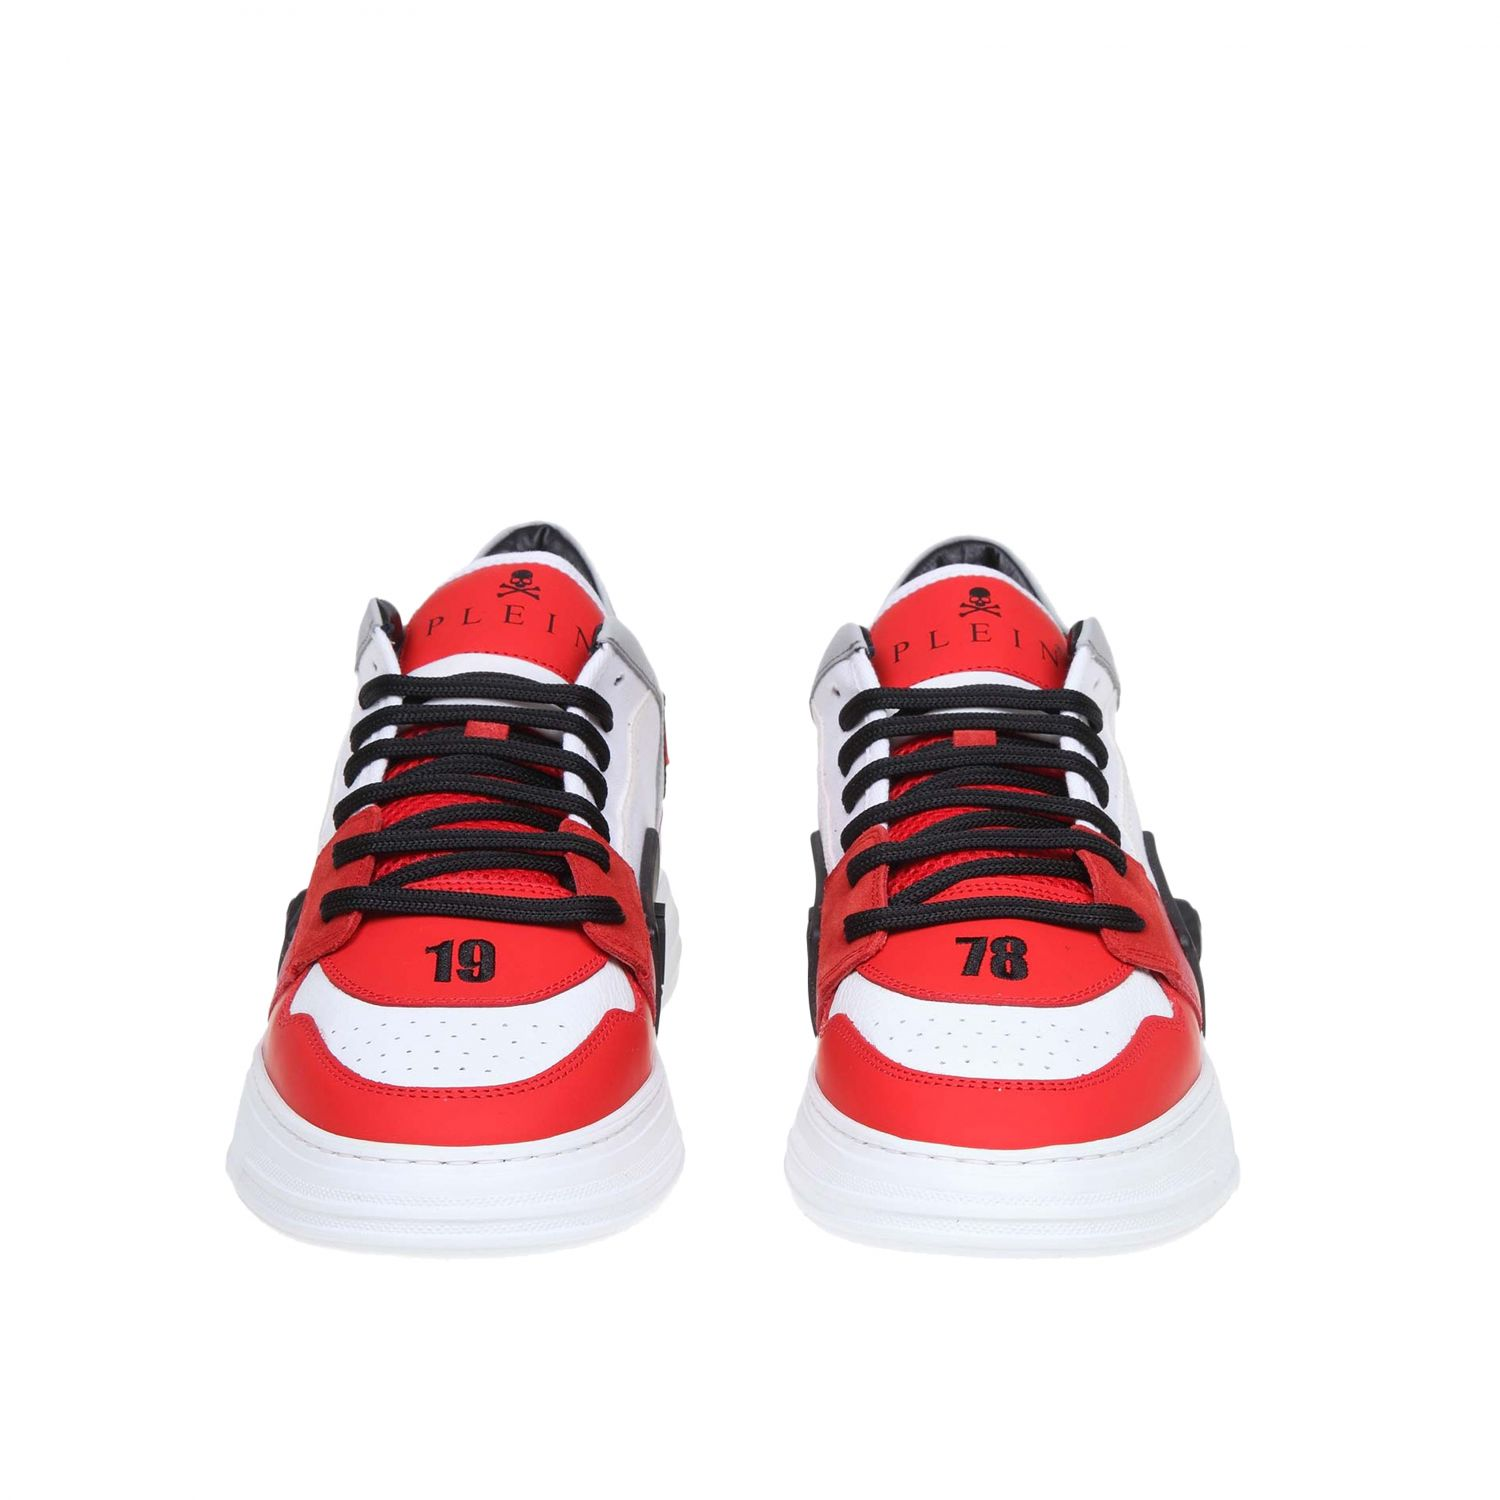 Sneakers men Philipp Plein red 3